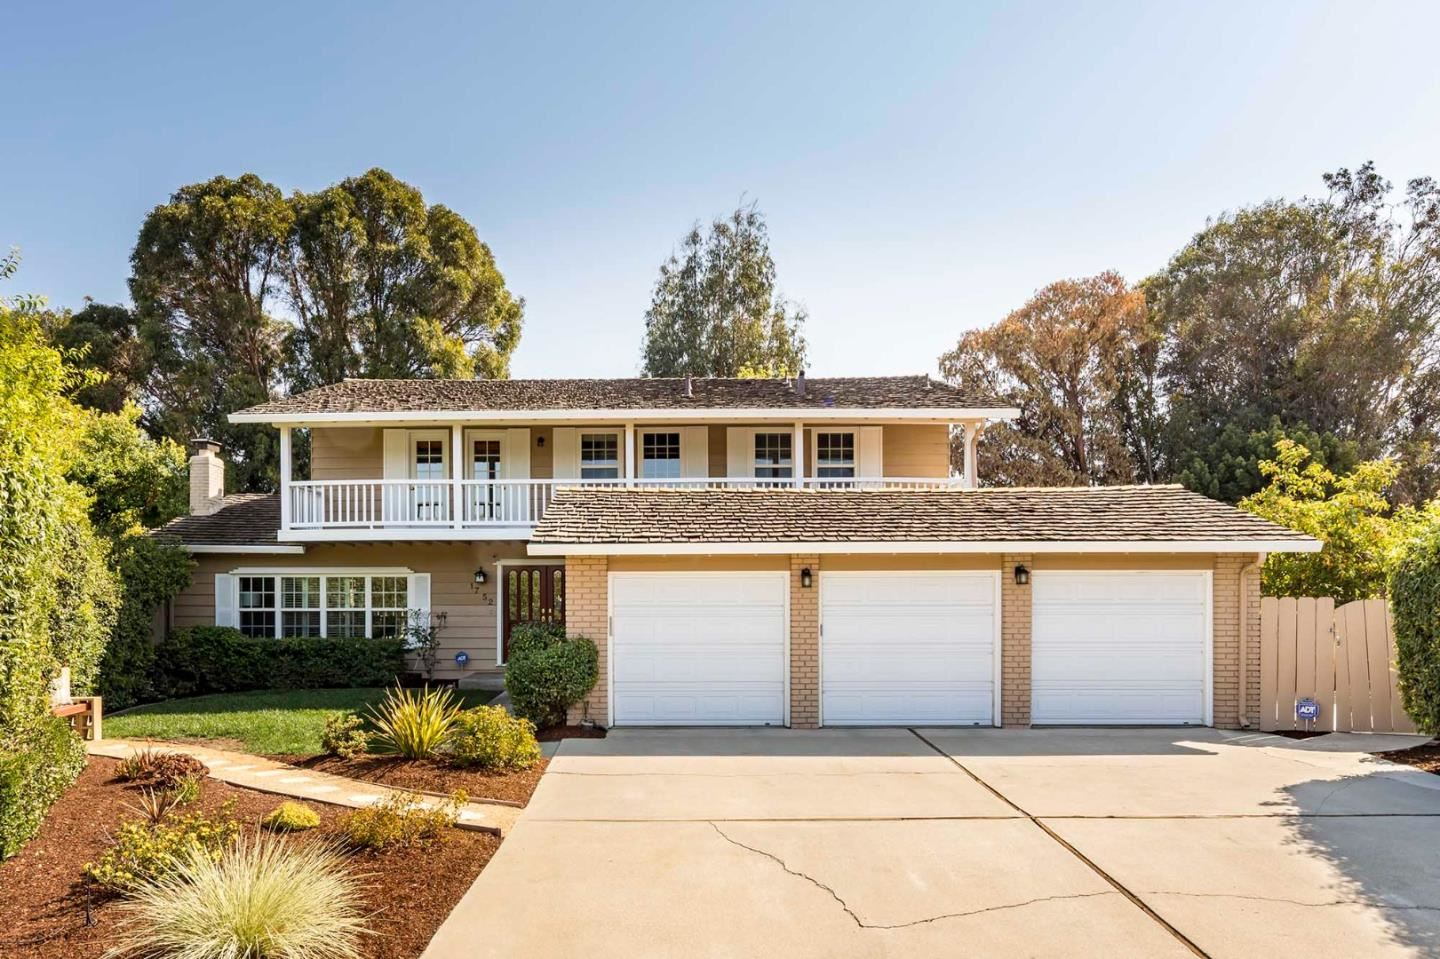 Photo for 1752 Hawkins DR, LOS ALTOS, CA 94024 (MLS # ML81814164)